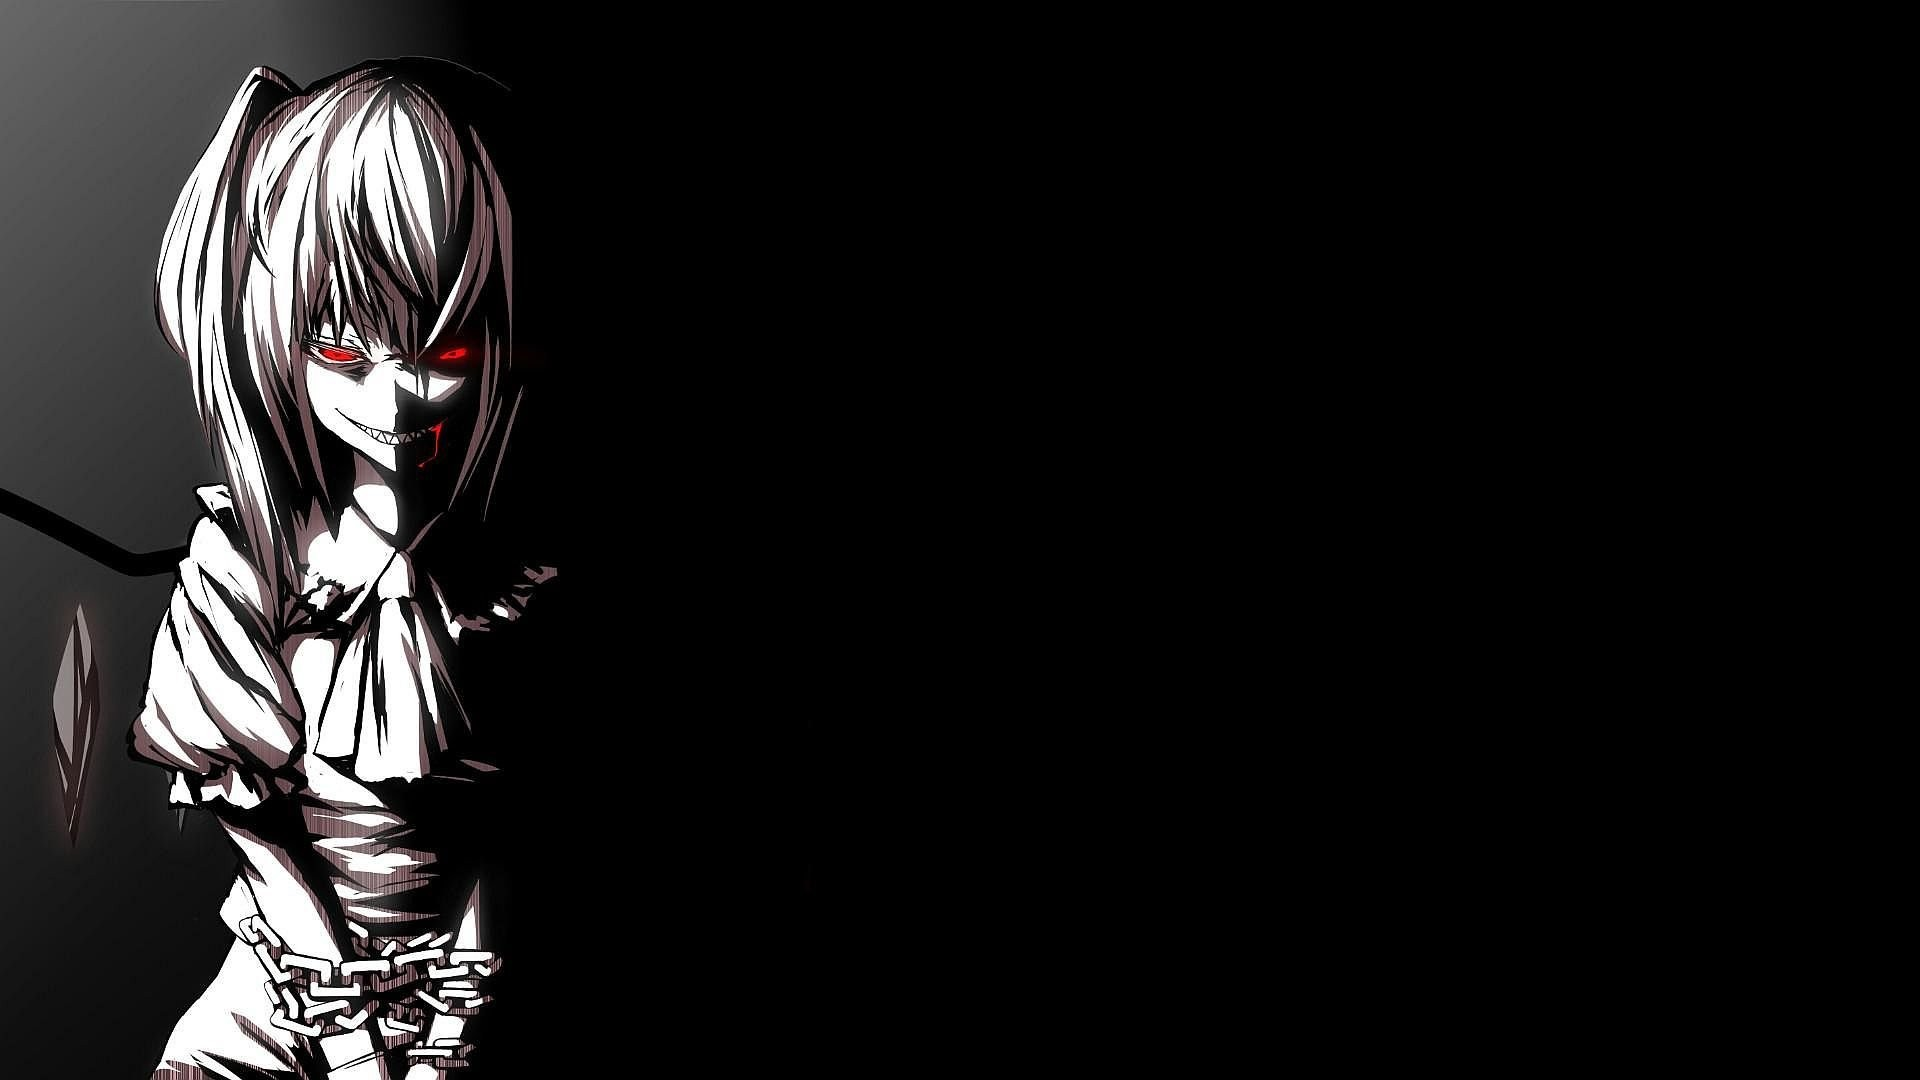 Collection of Evil Anime Wallpaper on HDWallpapers